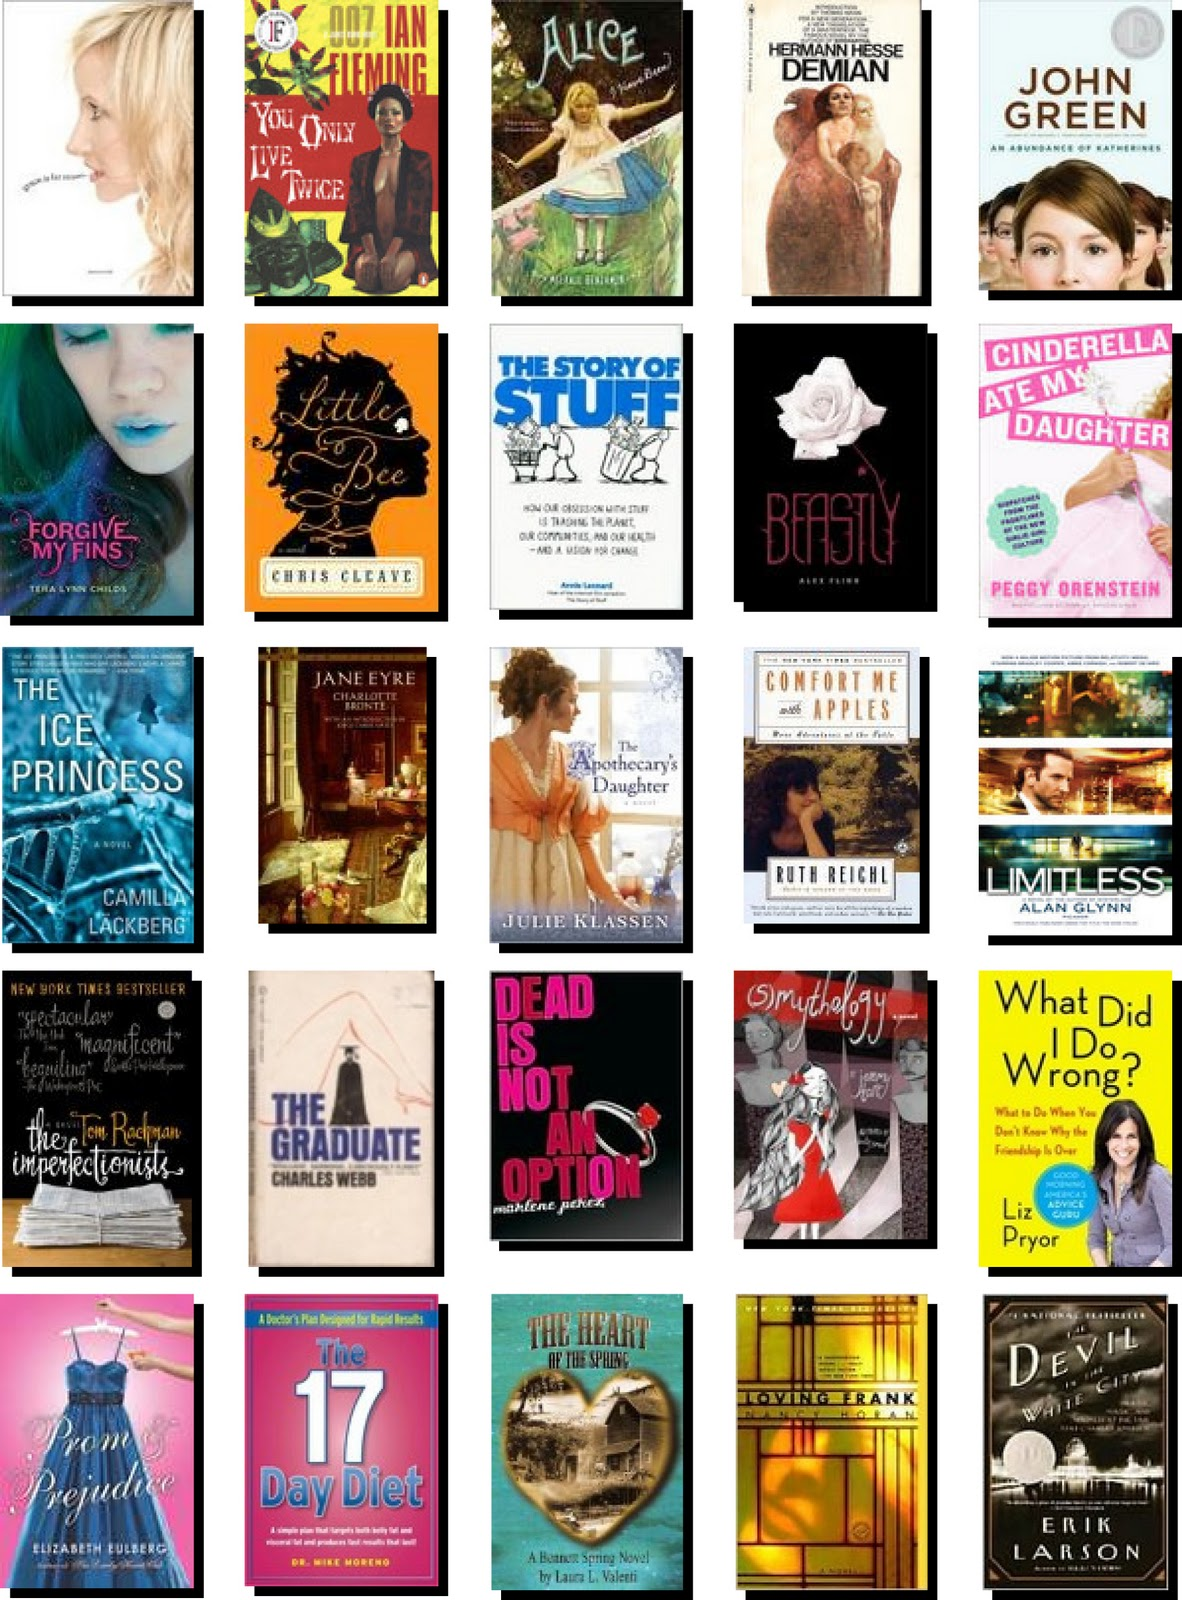 The Conscientious Reader: 50 Books Completed!